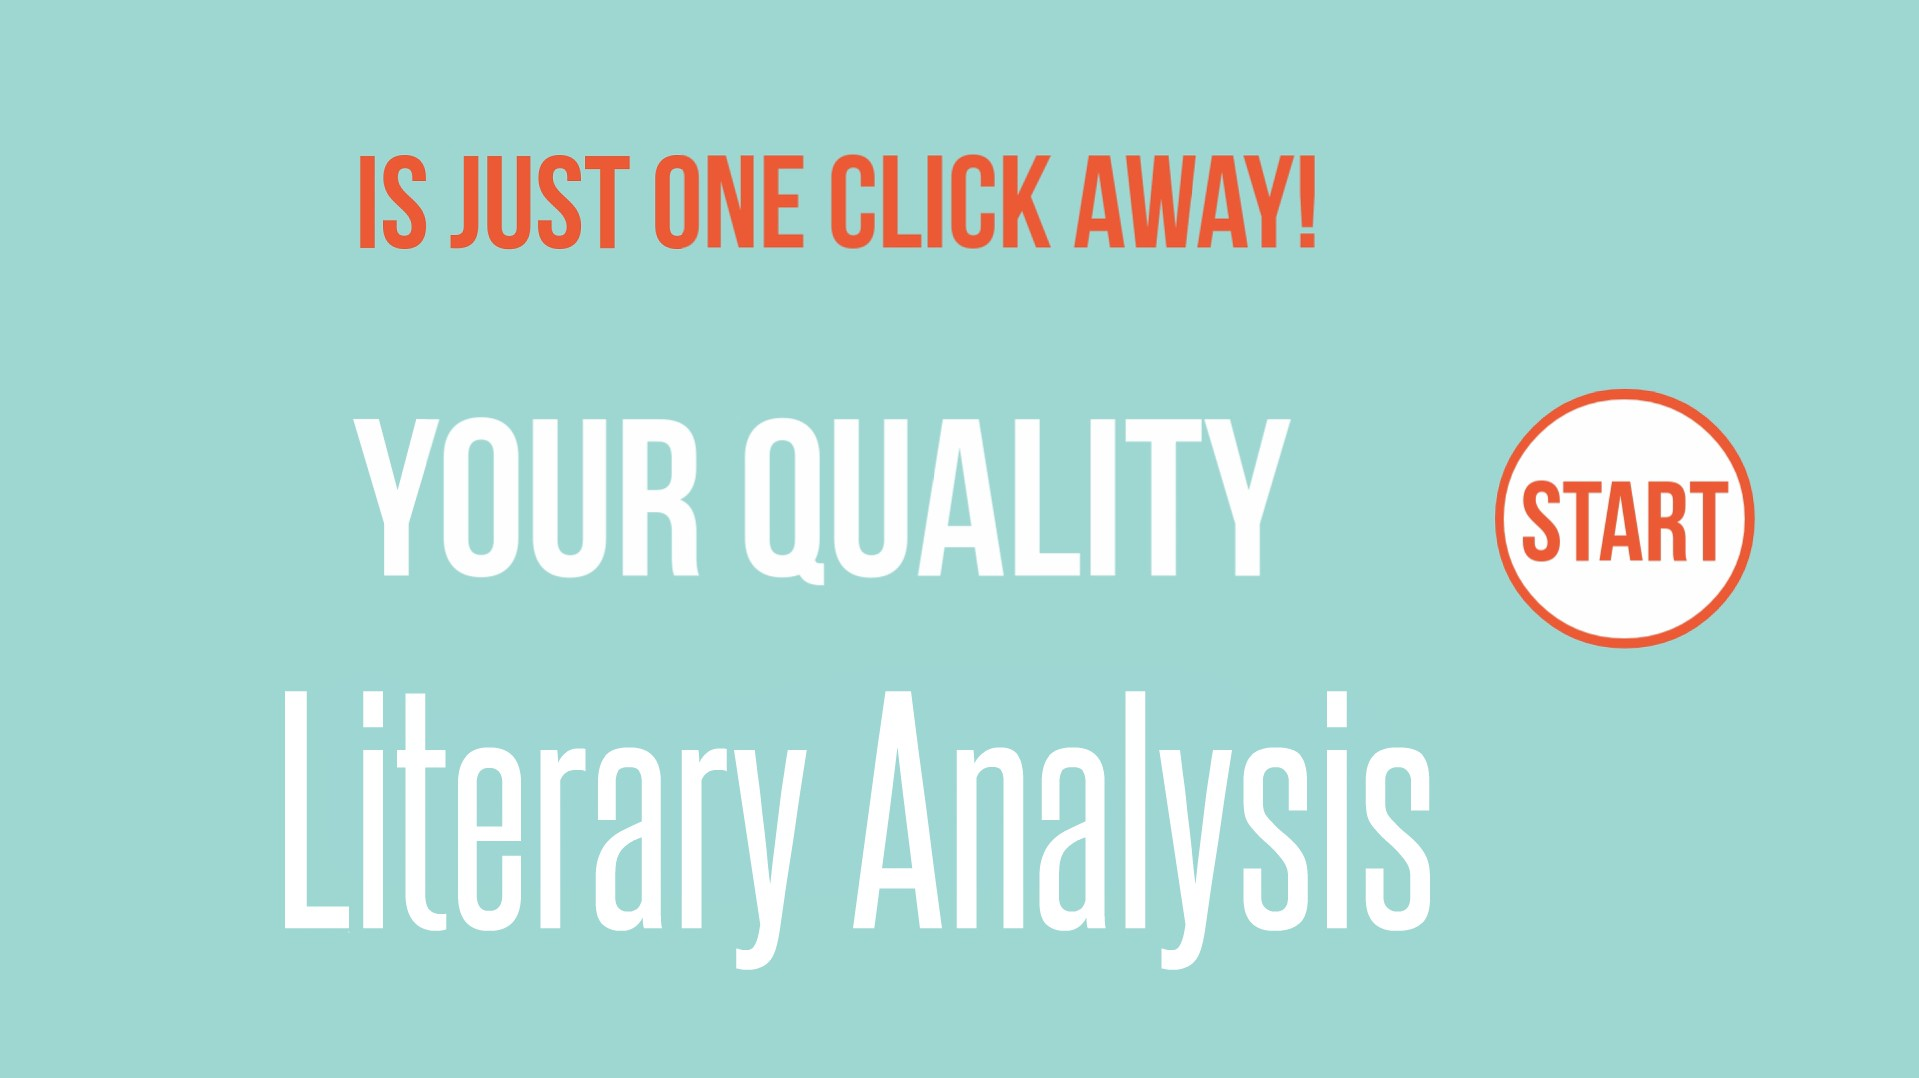 How to purchasliterary analysis papers